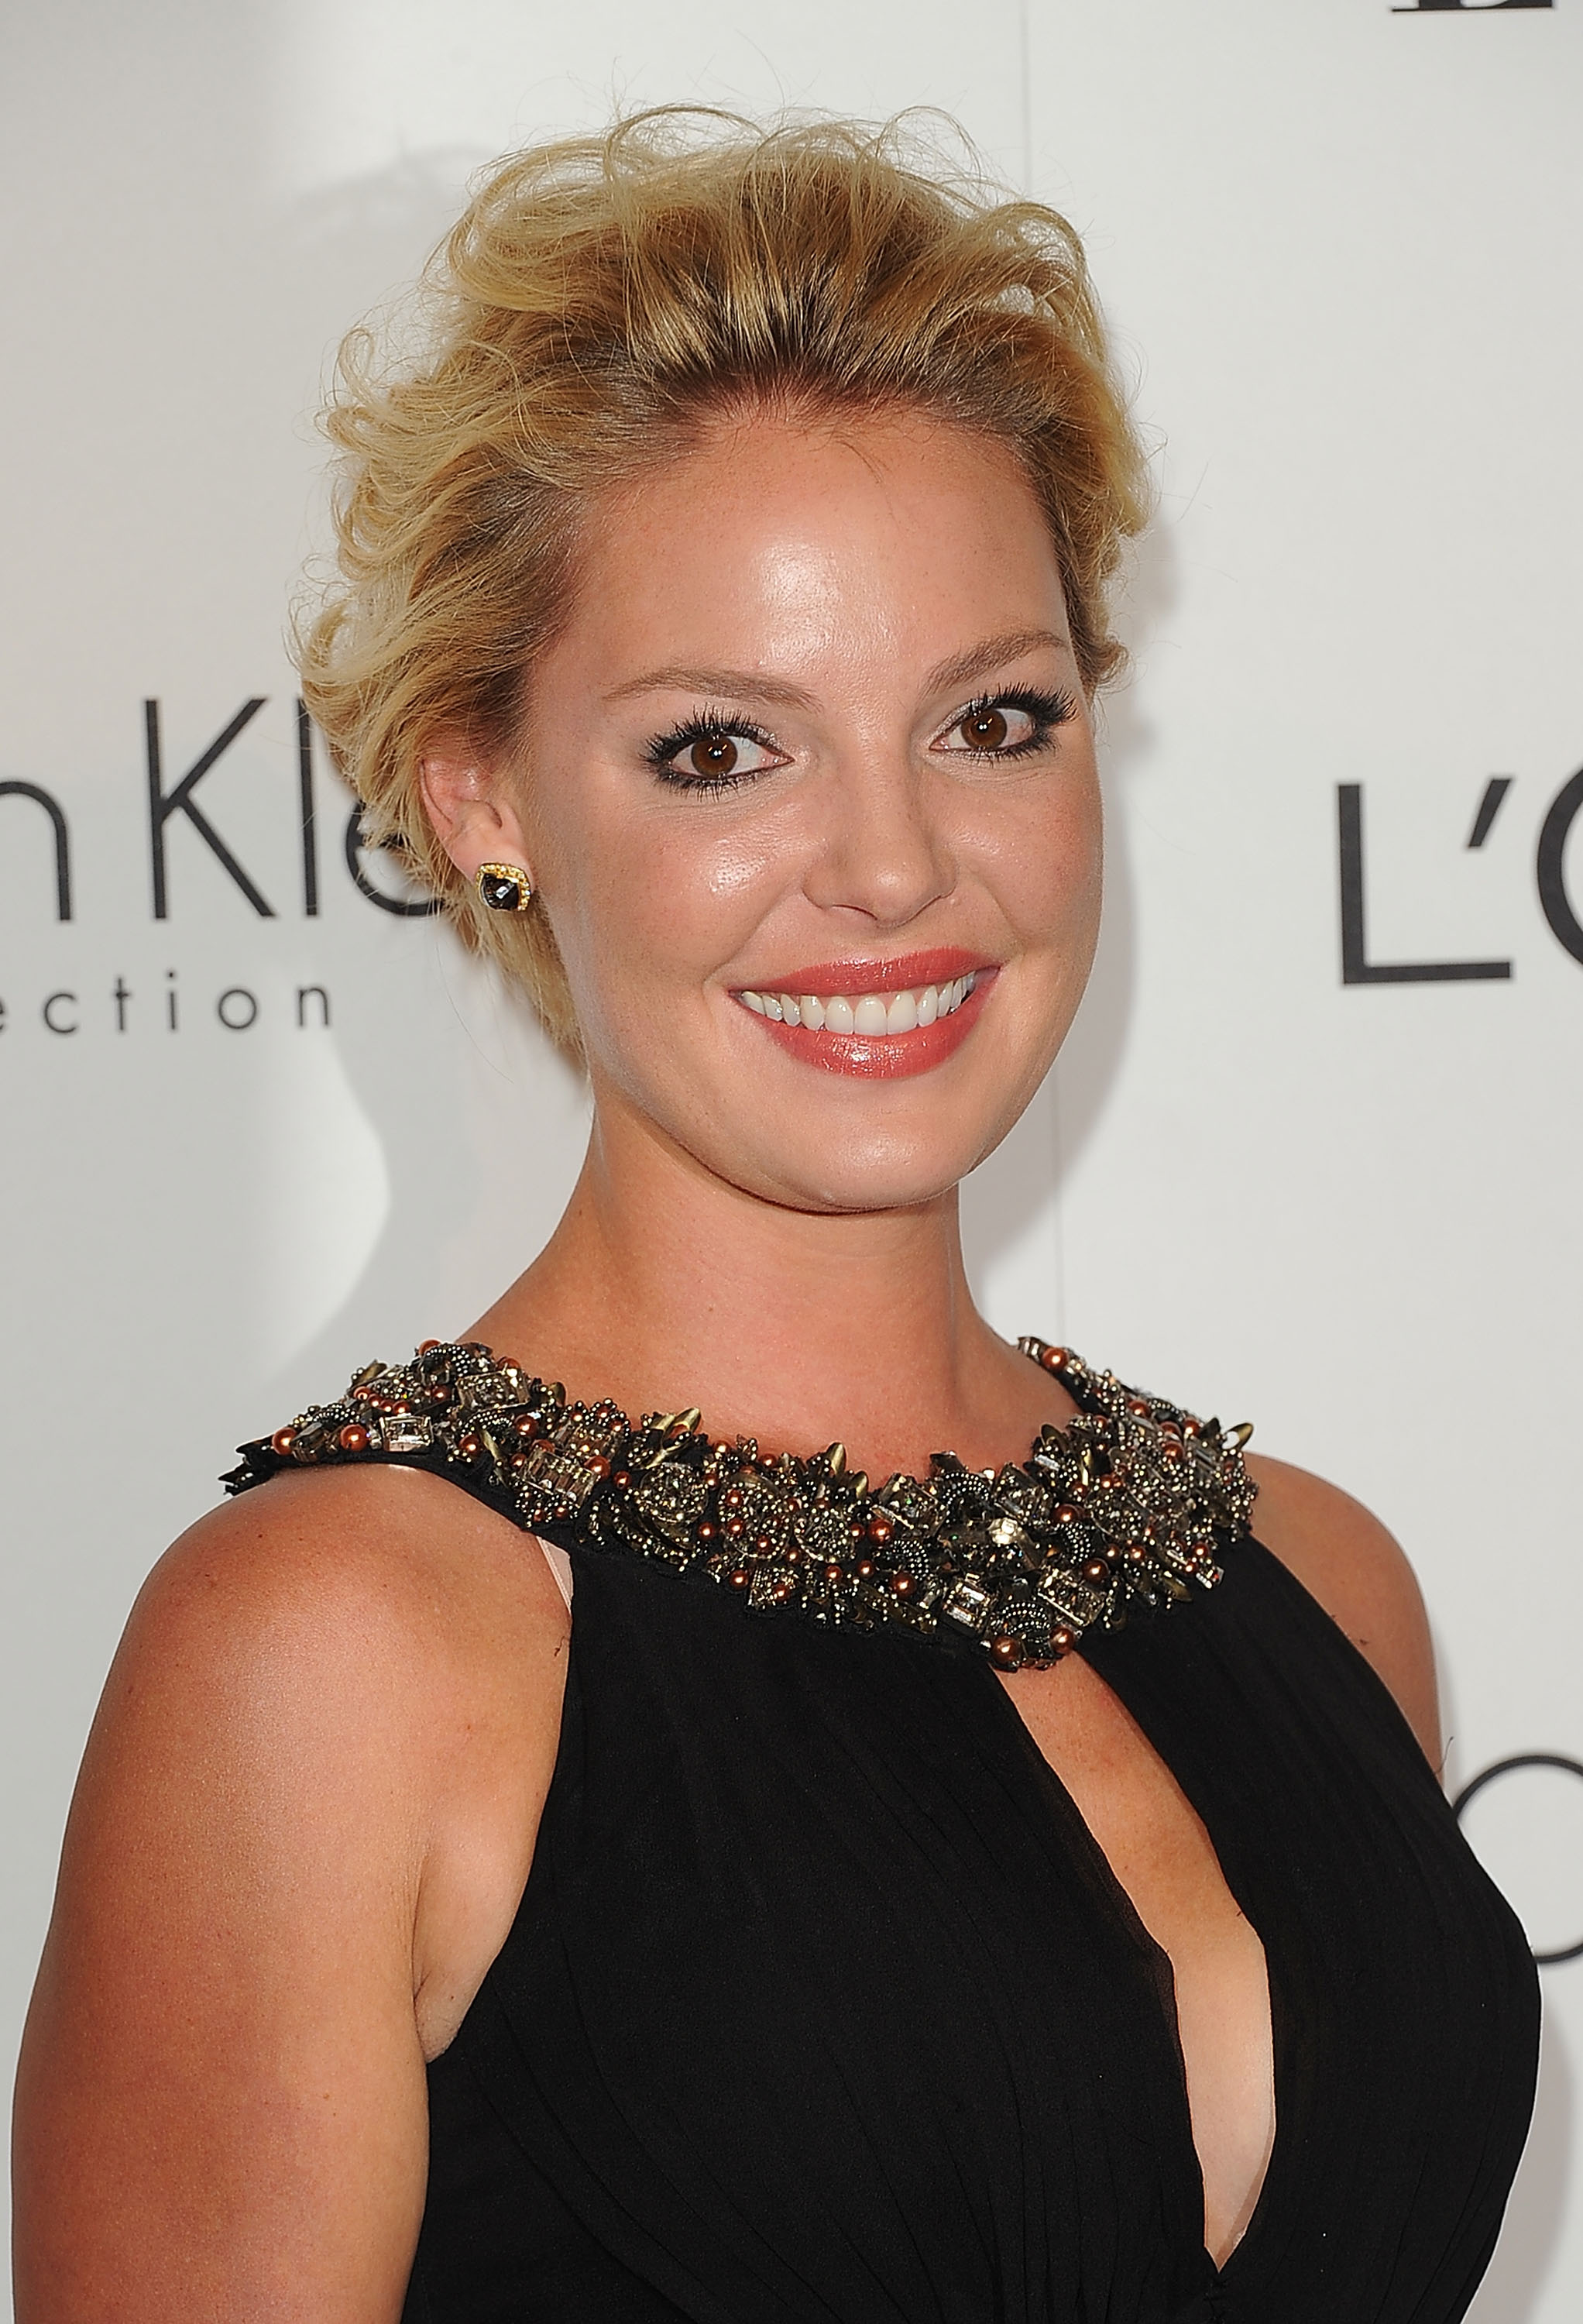 Katherine Heigl swept her hair back for an event in LA.